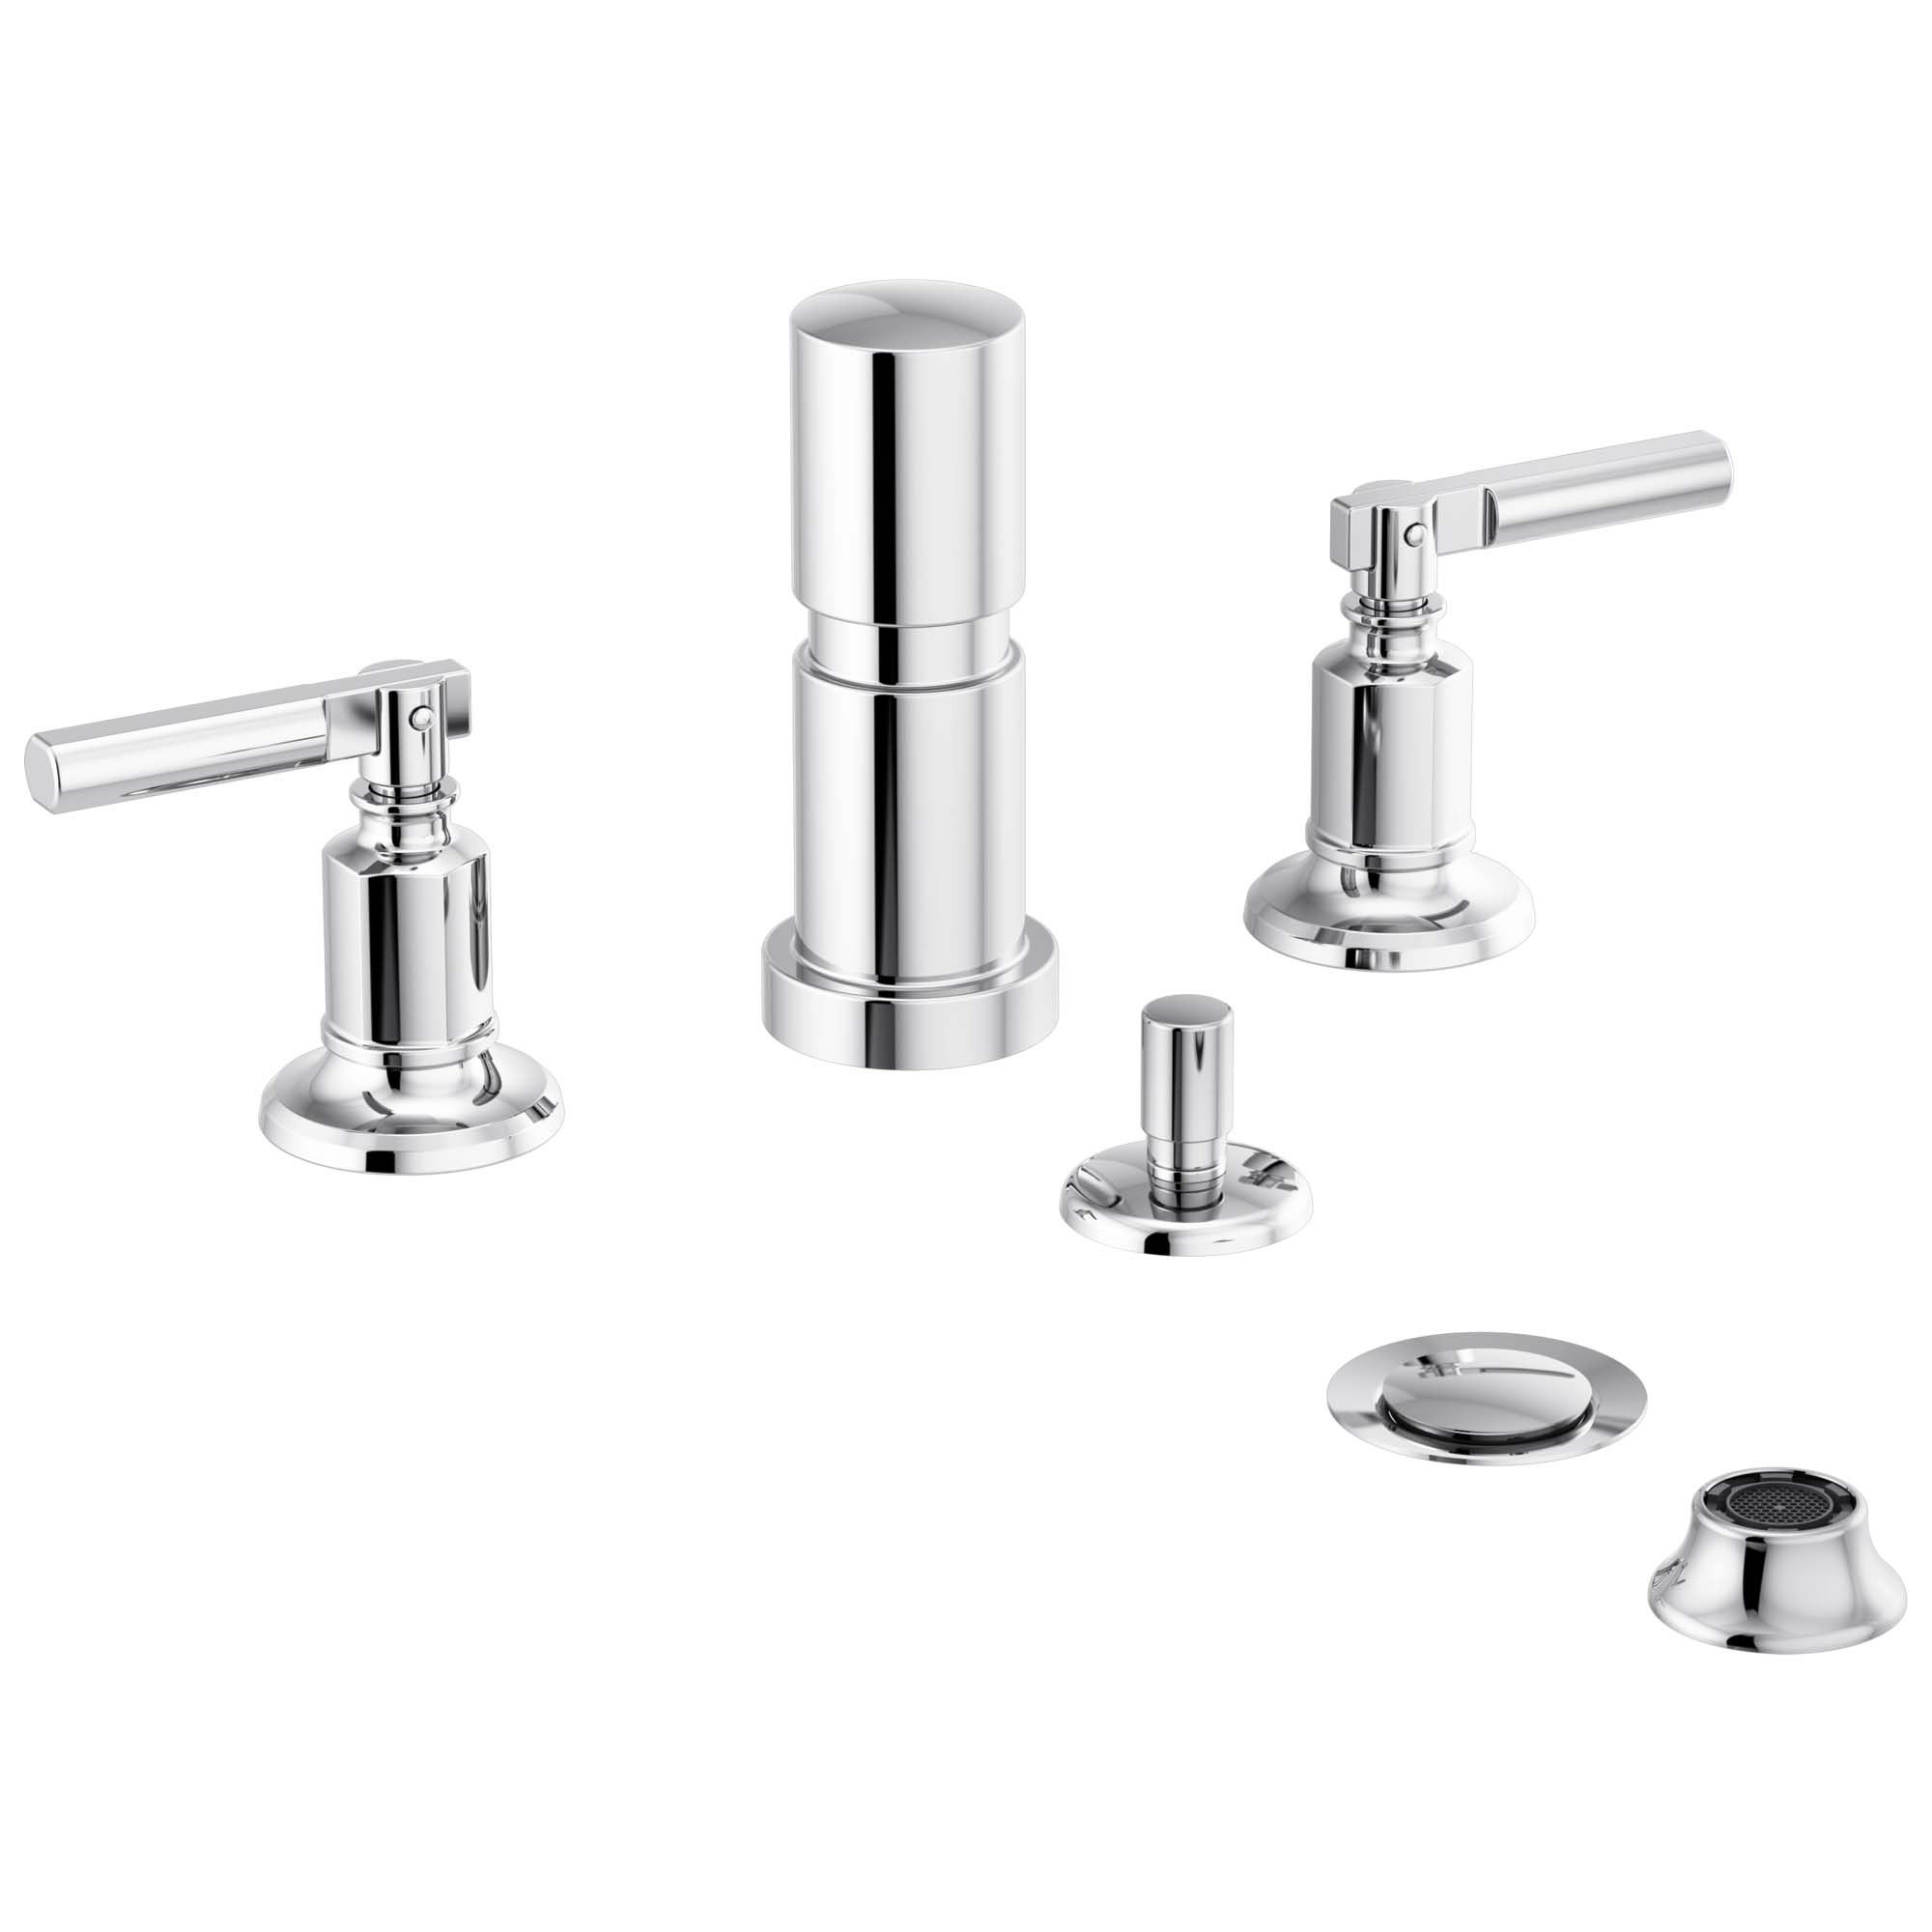 Brizo 68476-PC Brizo Invari: Bidet - Chrome